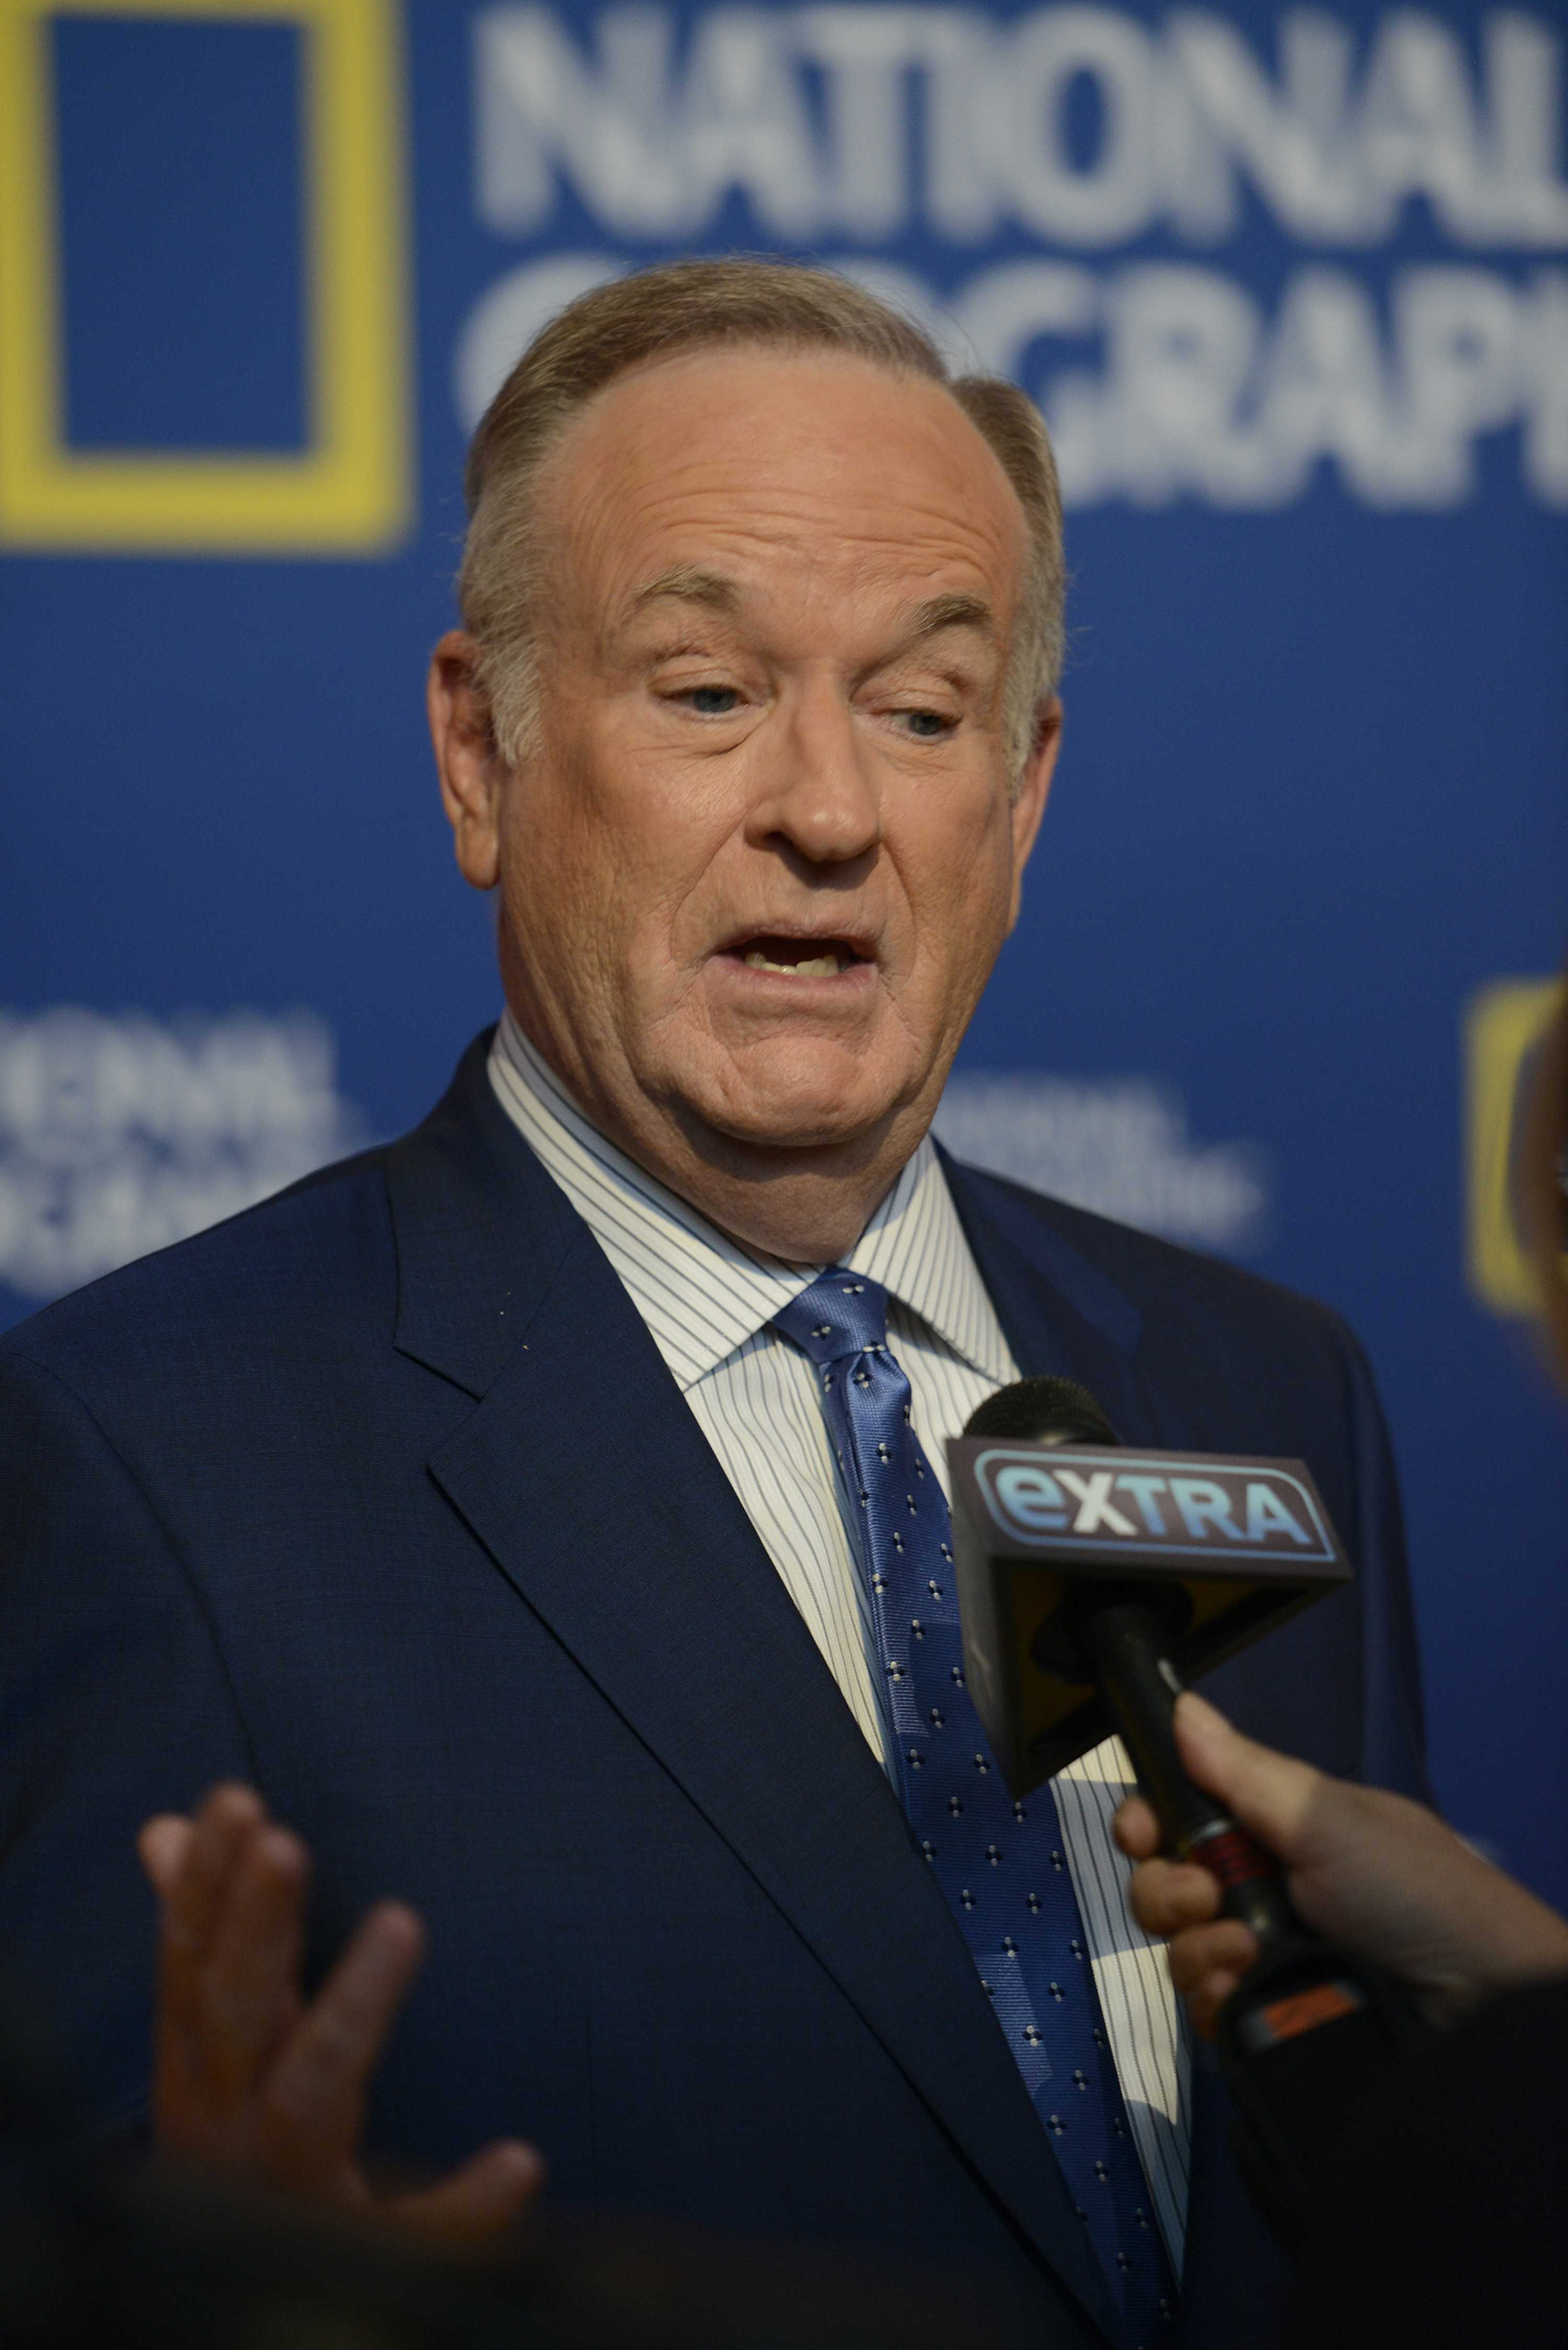 Bill O'Reilly attends the world premiere screening of National Geographic Channel's